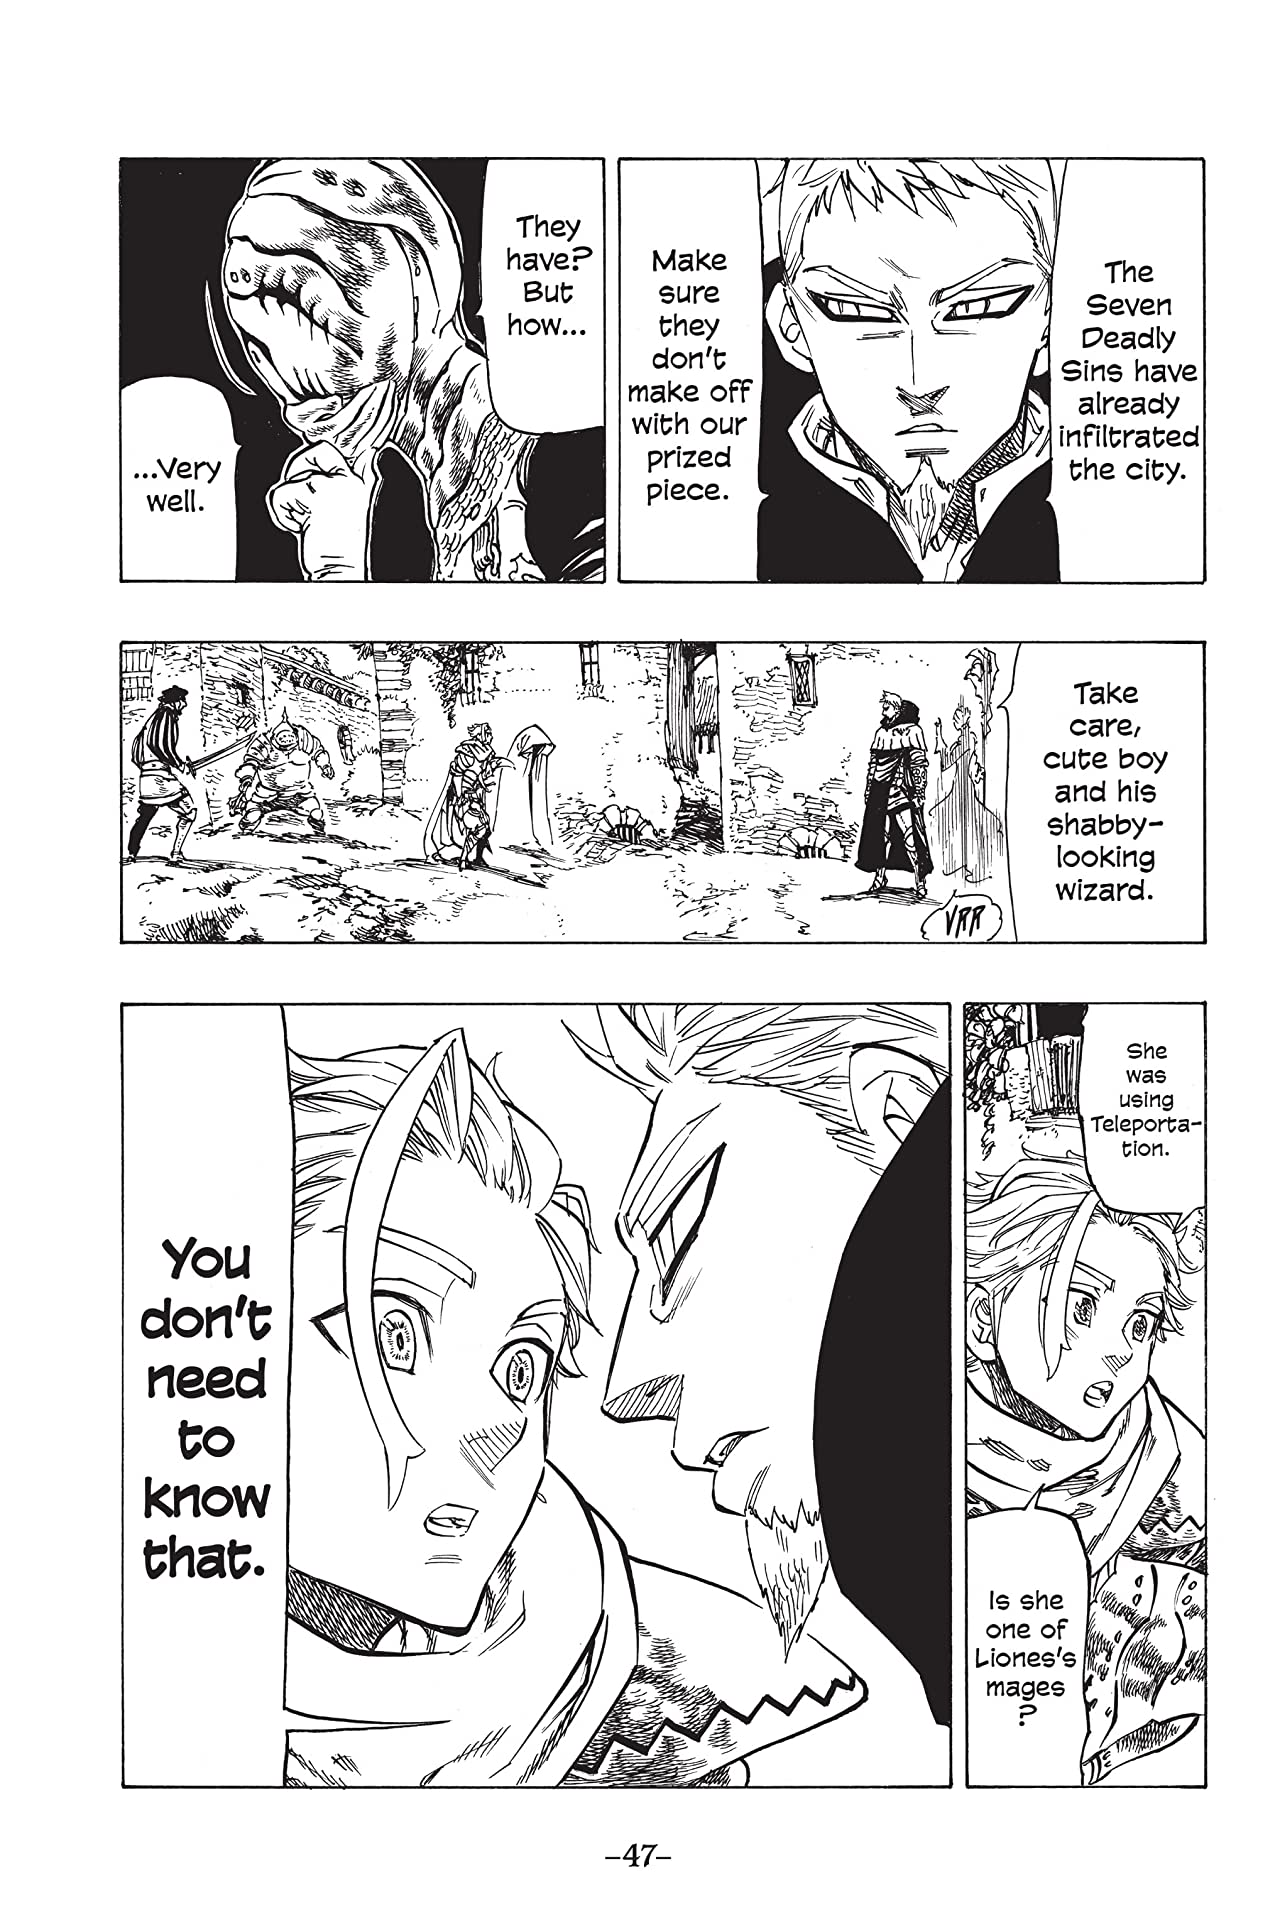 The Seven Deadly Sins #65